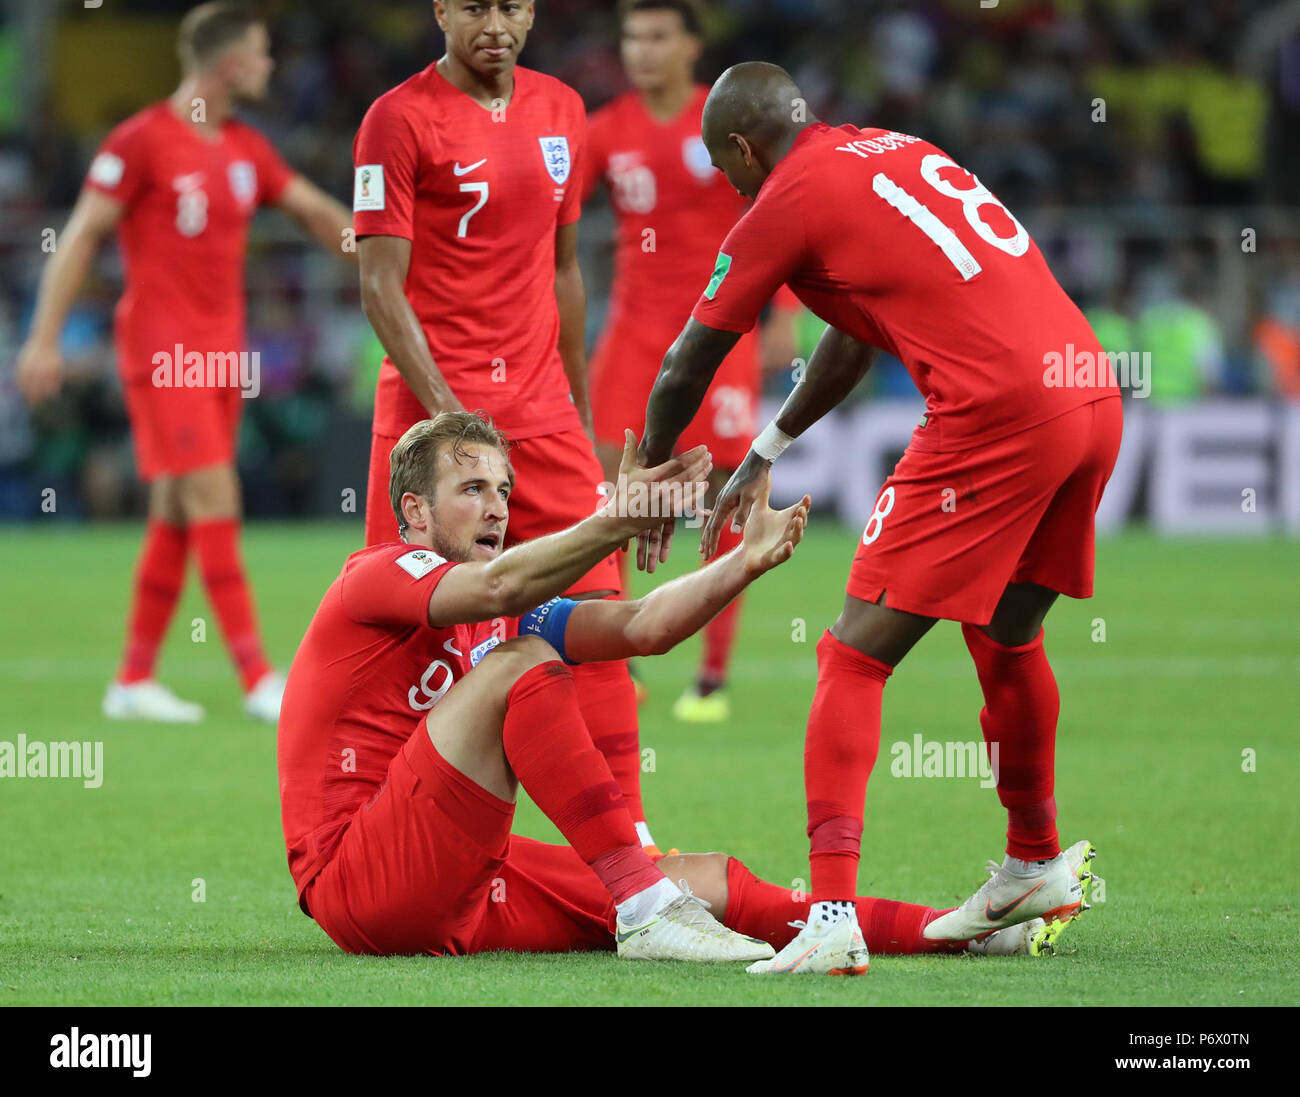 Moscow Russia 3rd July 2018 England S Ashley Young R Front Pulls Up Teammate Harry Kane L Front During The 2018 Fifa World Cup Round Of 16 Match Between England And Colombia In